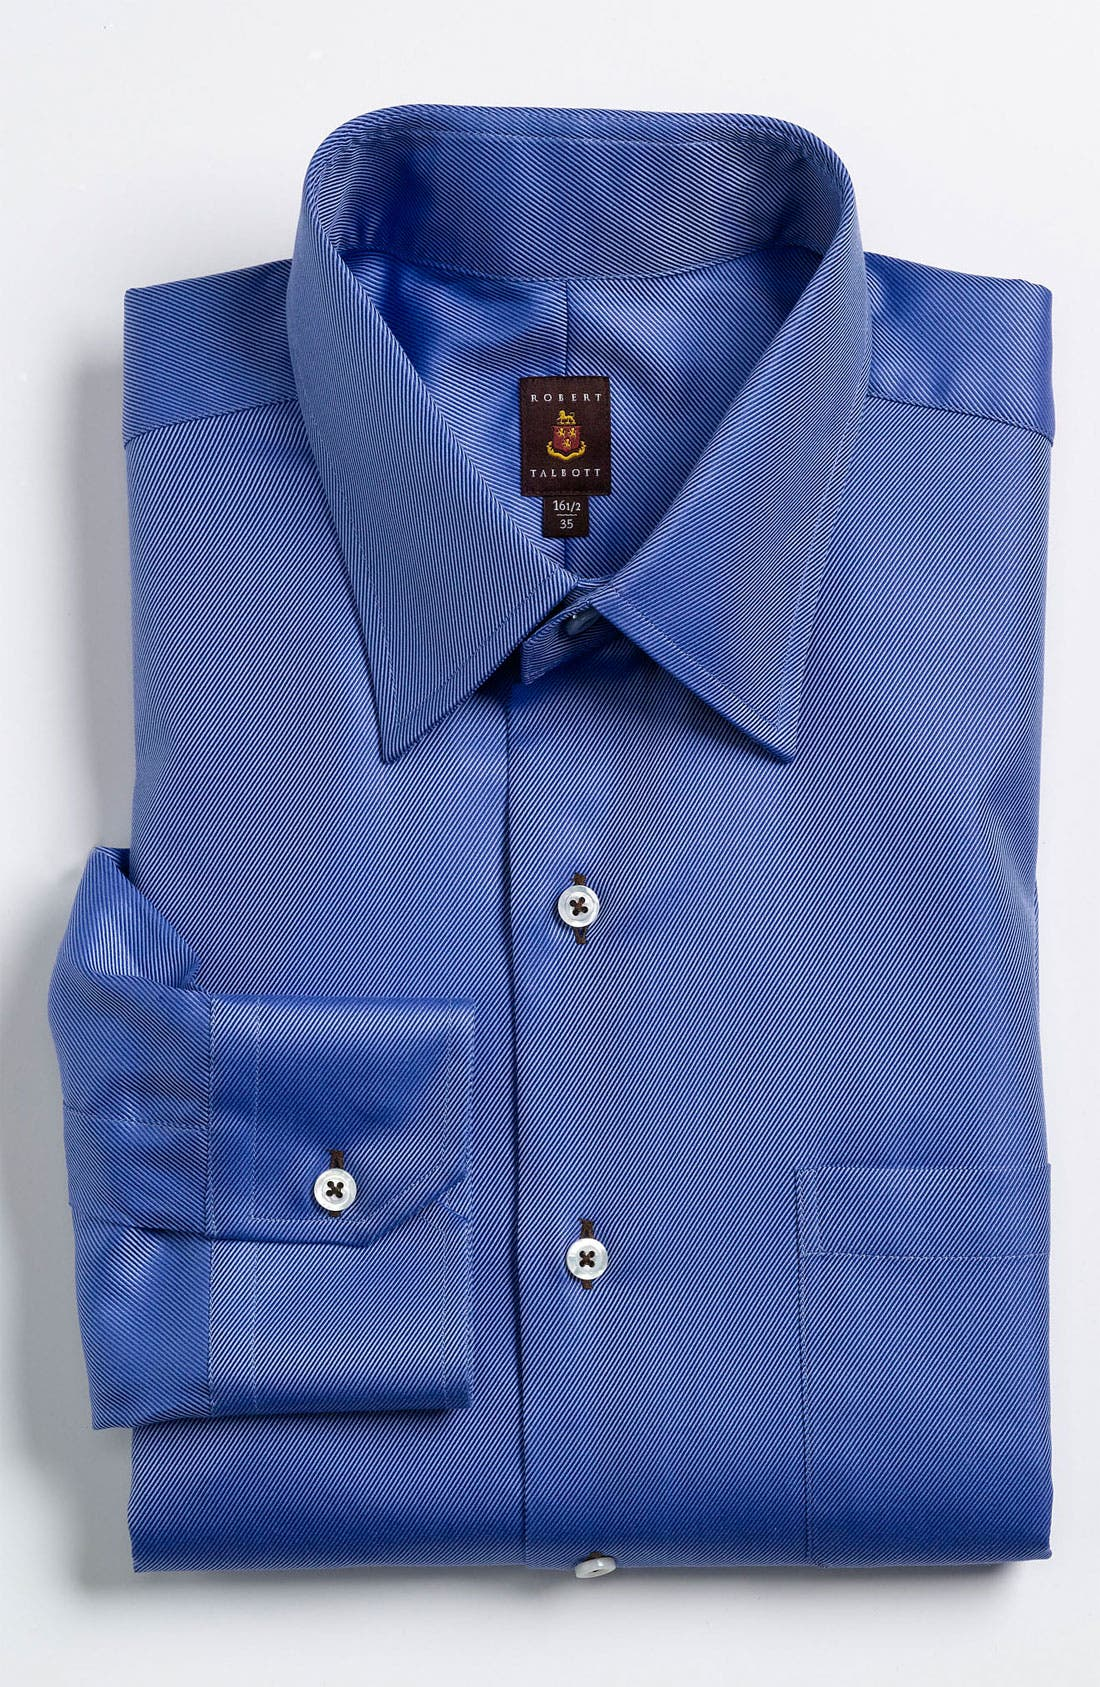 Main Image - Robert Talbott Classic Fit Dress Shirt (Online Only)